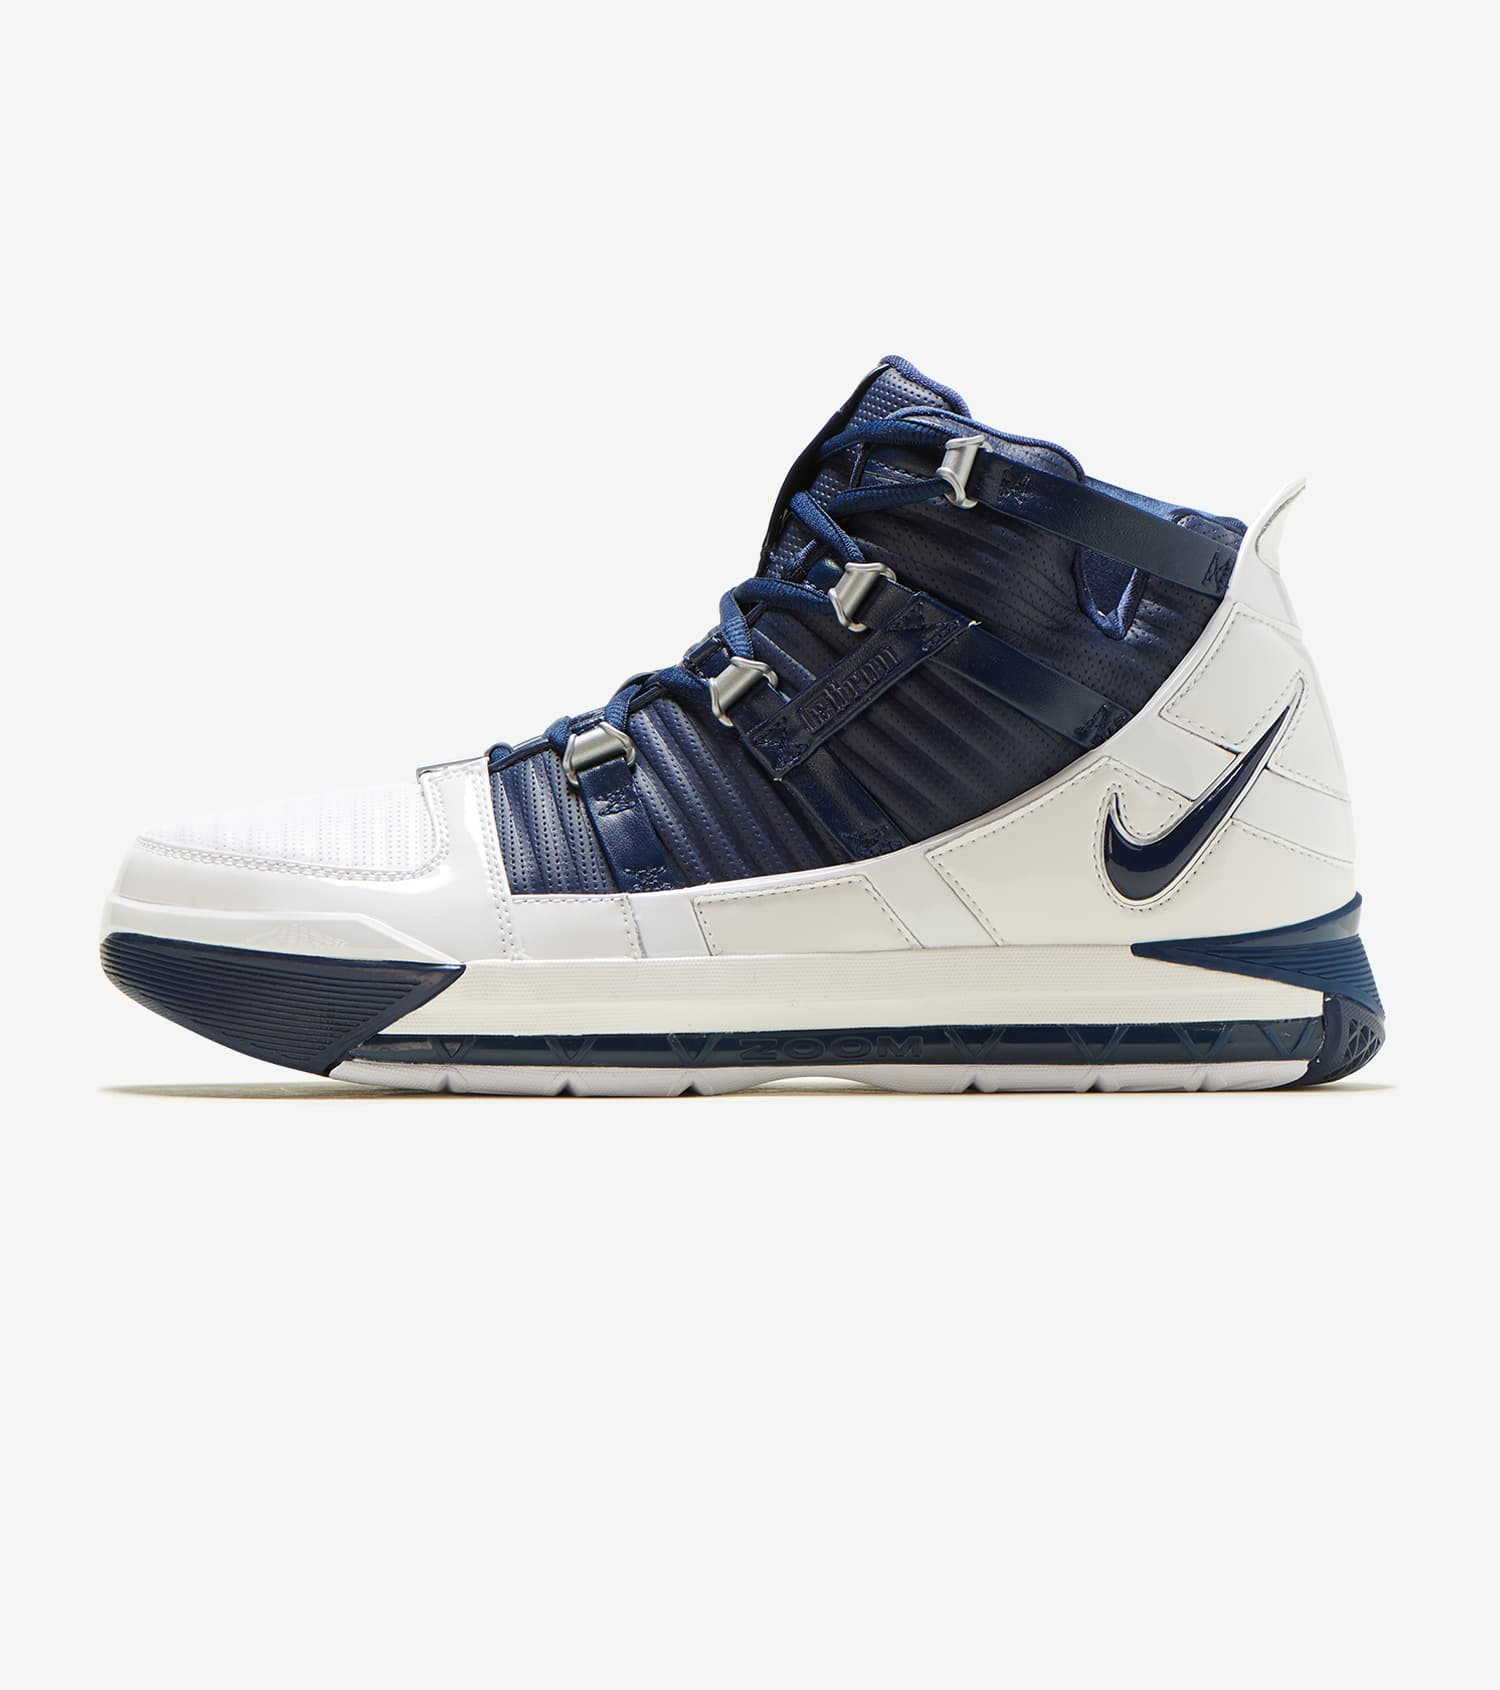 official photos 7d9a2 5a85f Zoom LeBron III QS